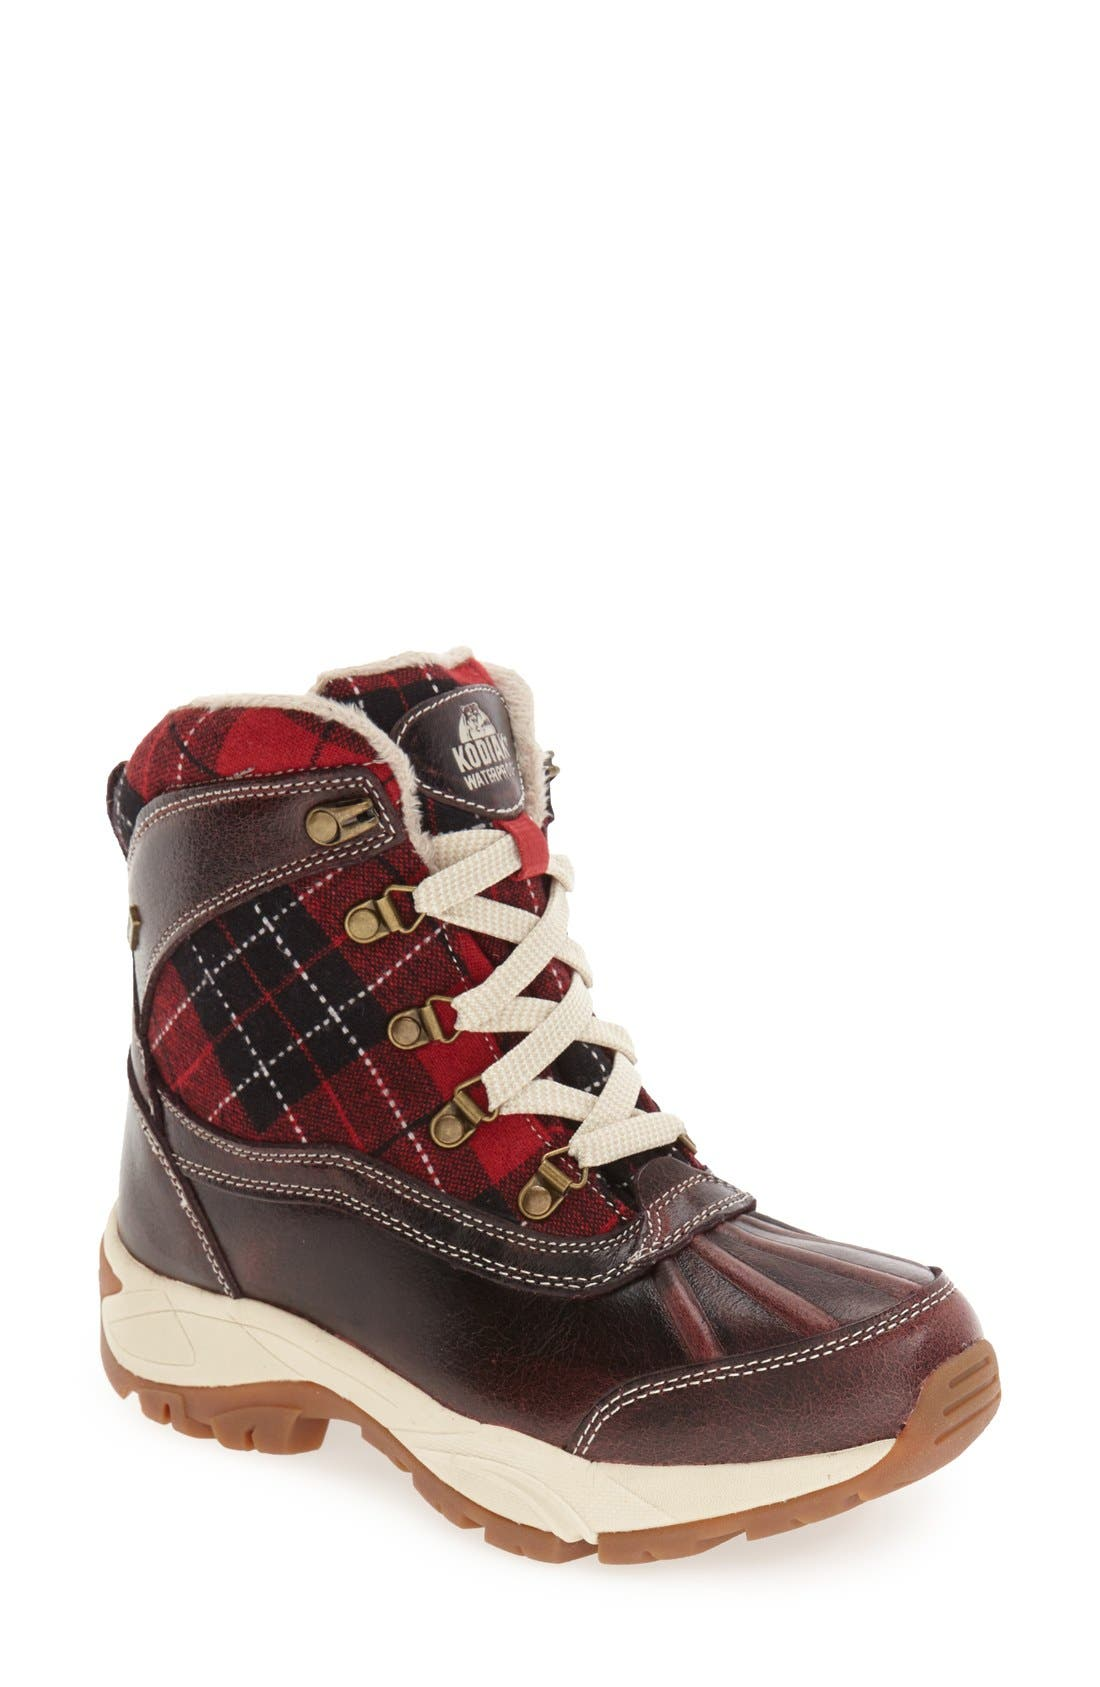 Rochelle Waterproof Insulated Winter Boot,                             Main thumbnail 1, color,                             RED PLAID LEATHER